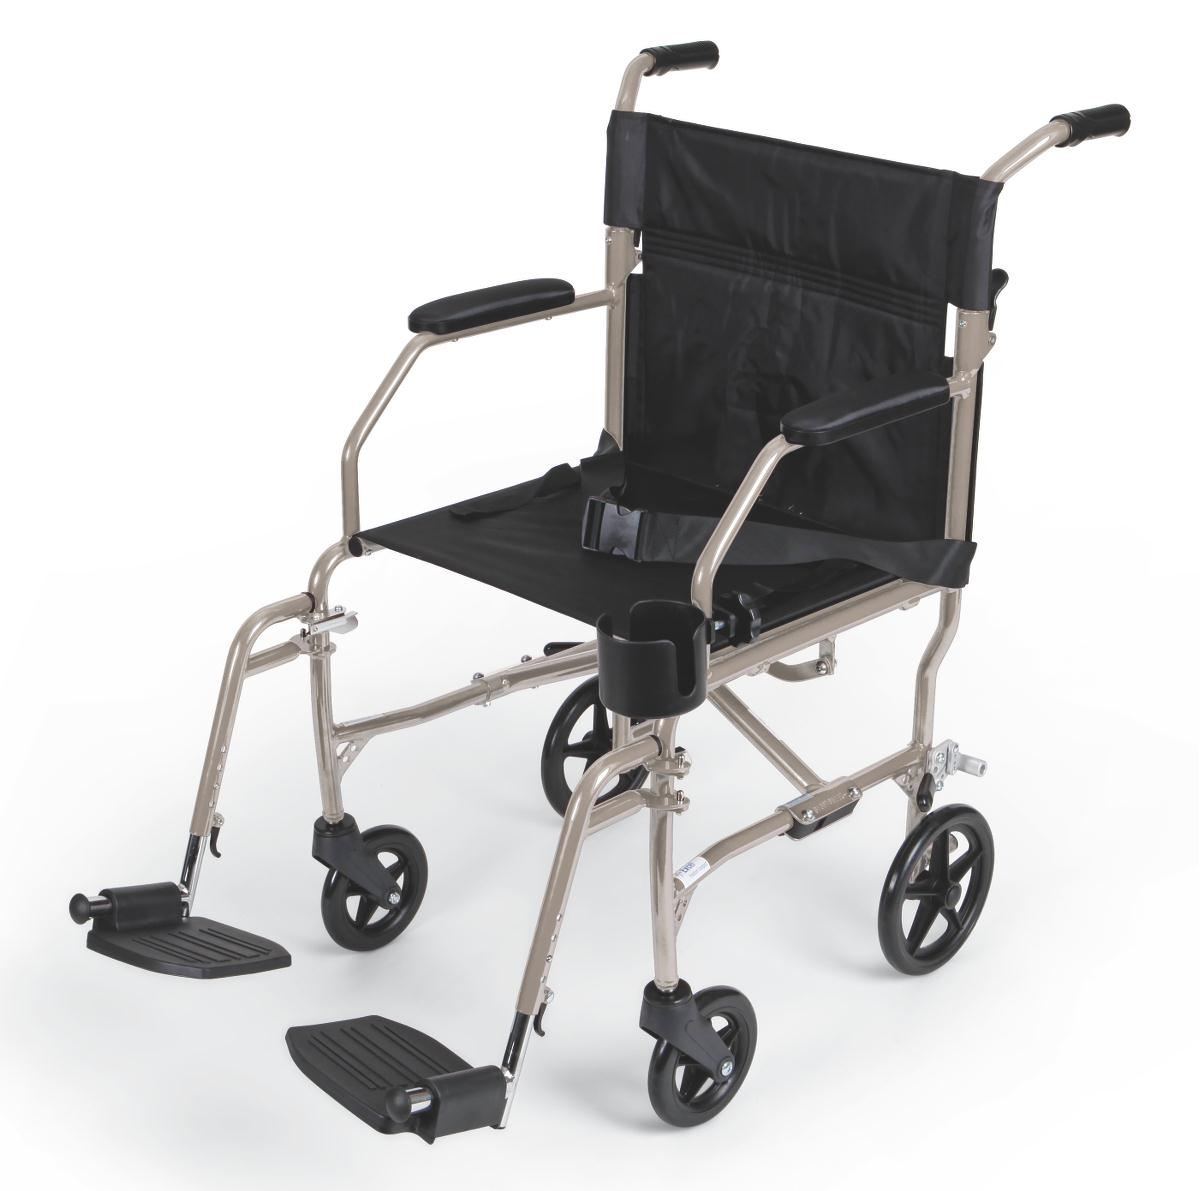 Transport Chairs Buy Lightweight Freedom 2 Transport Chair 300 Lbs Cap In